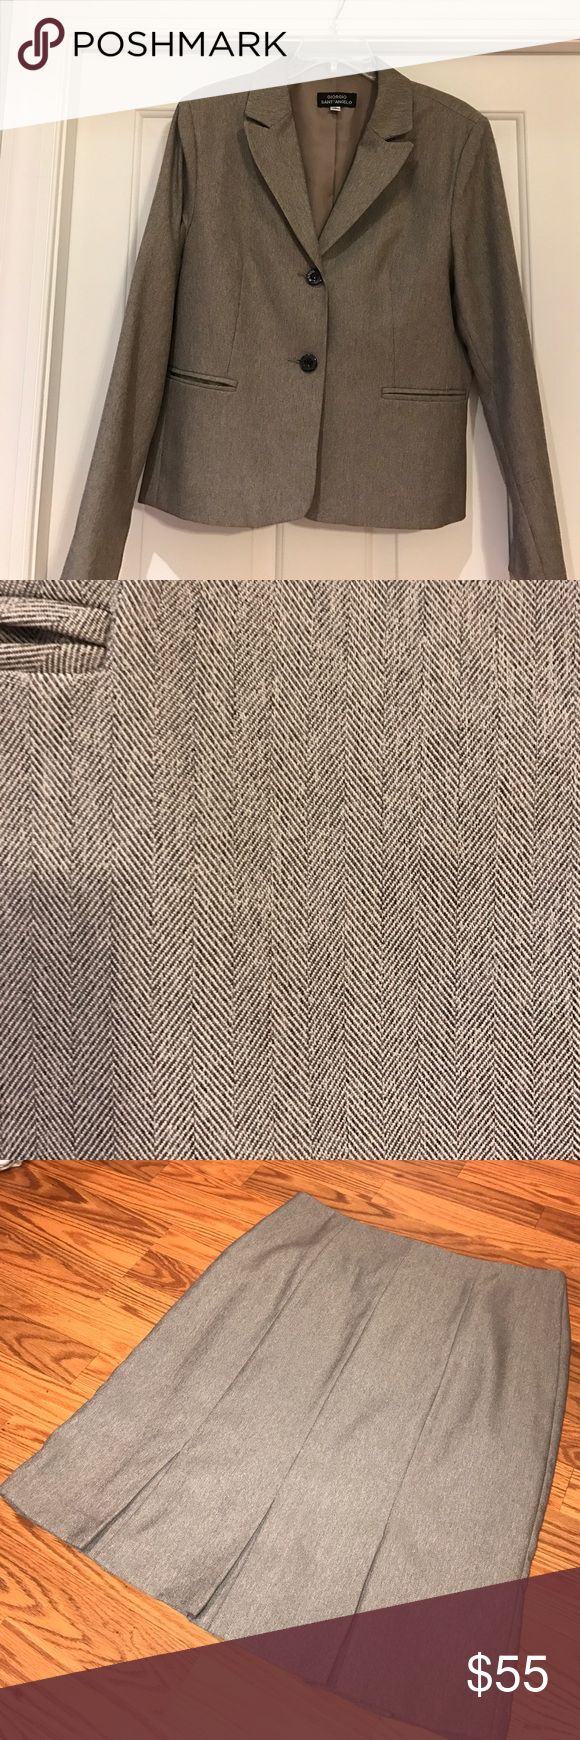 Woman's suit Tan herringbone suit- jacket and skirt Other